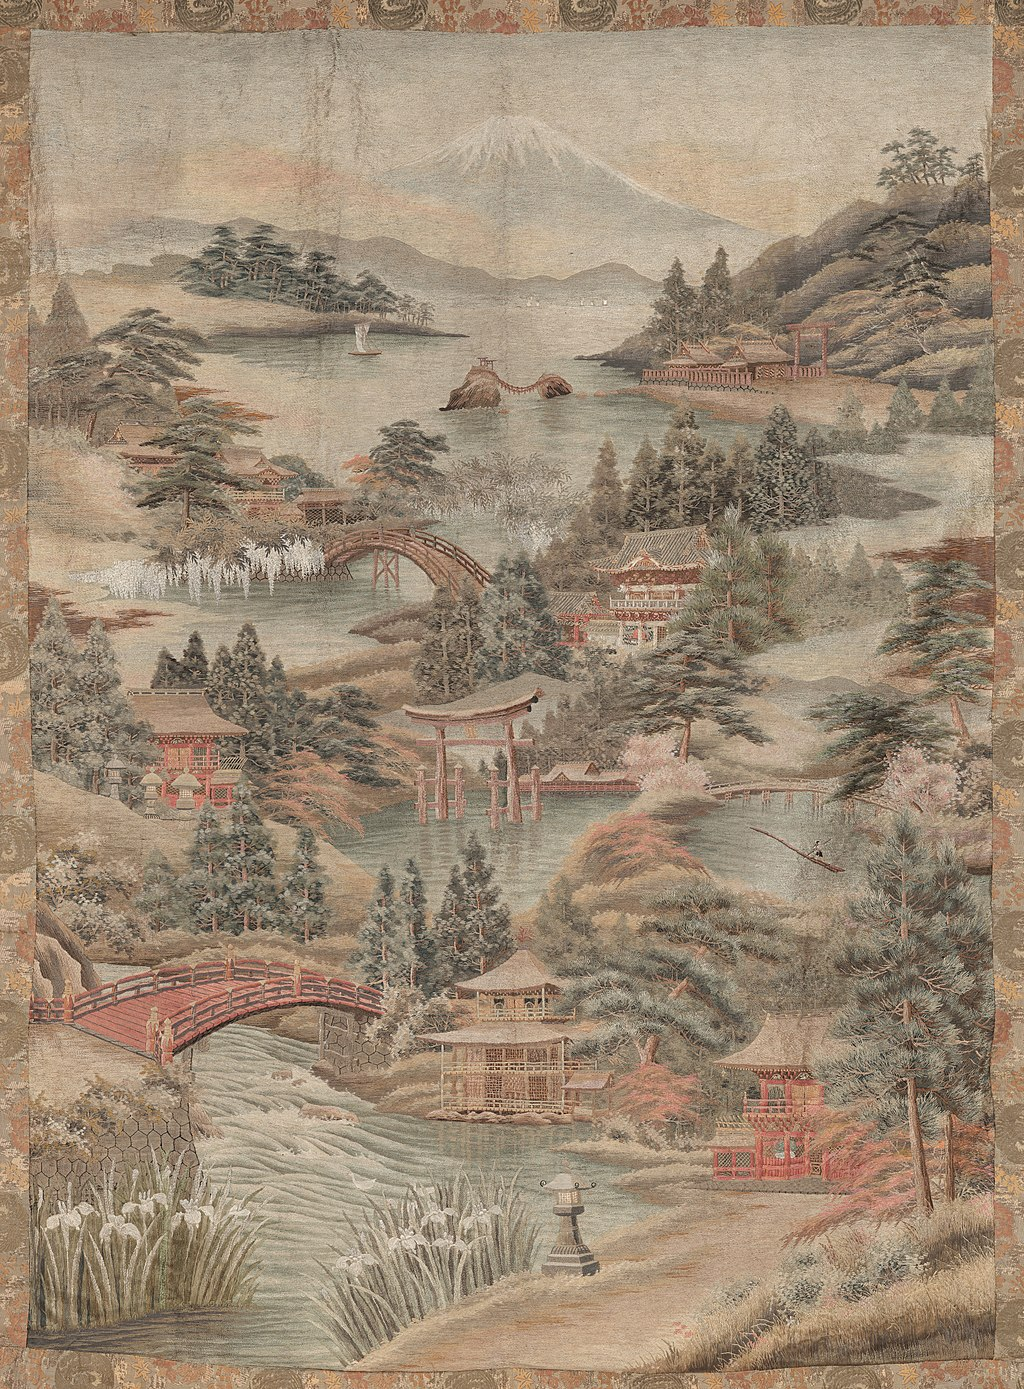 Khalili Collections A Composite Imaginary View of Japan